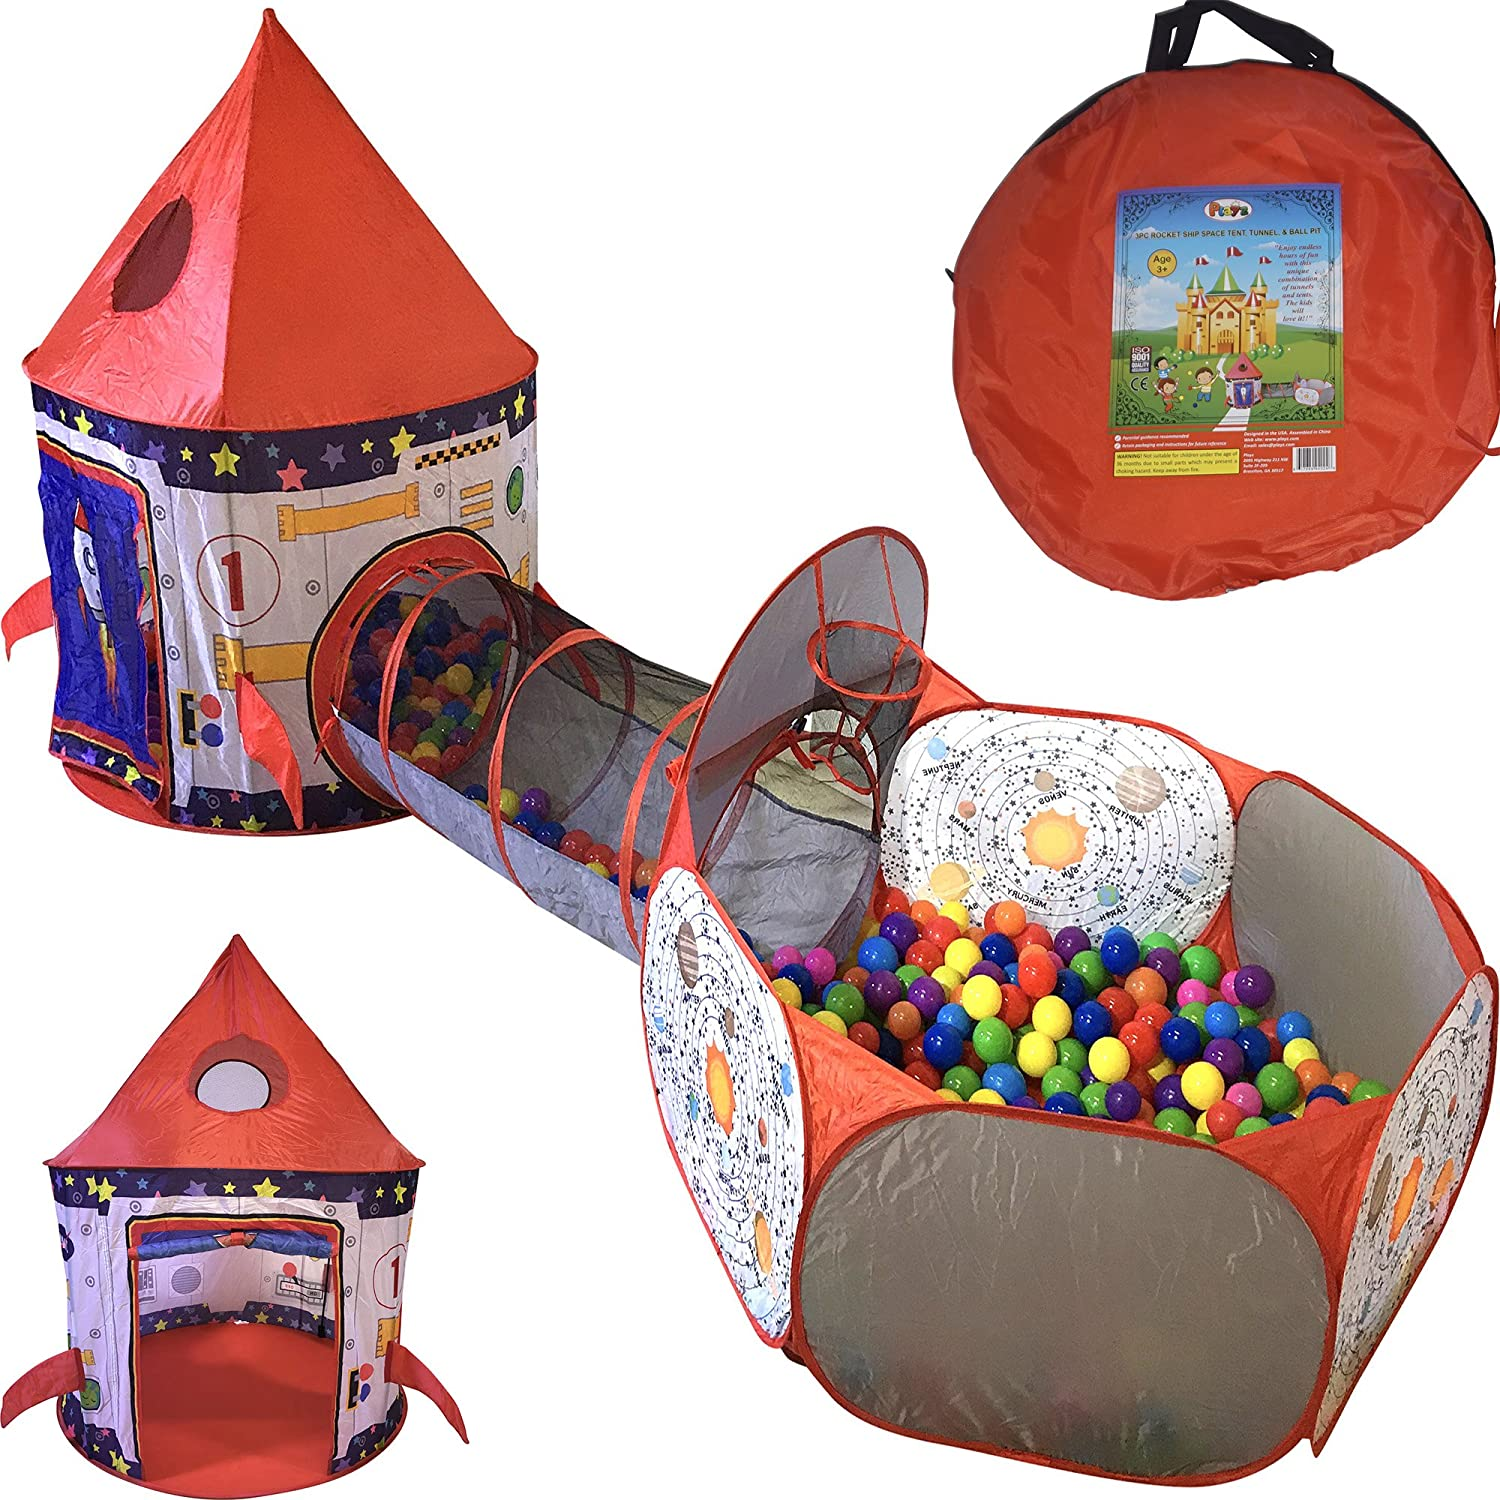 Best Play Tents  sc 1 st  Mymommyneedsthat & The Best Play Tents of 2018 - mymommyneedsthat.com